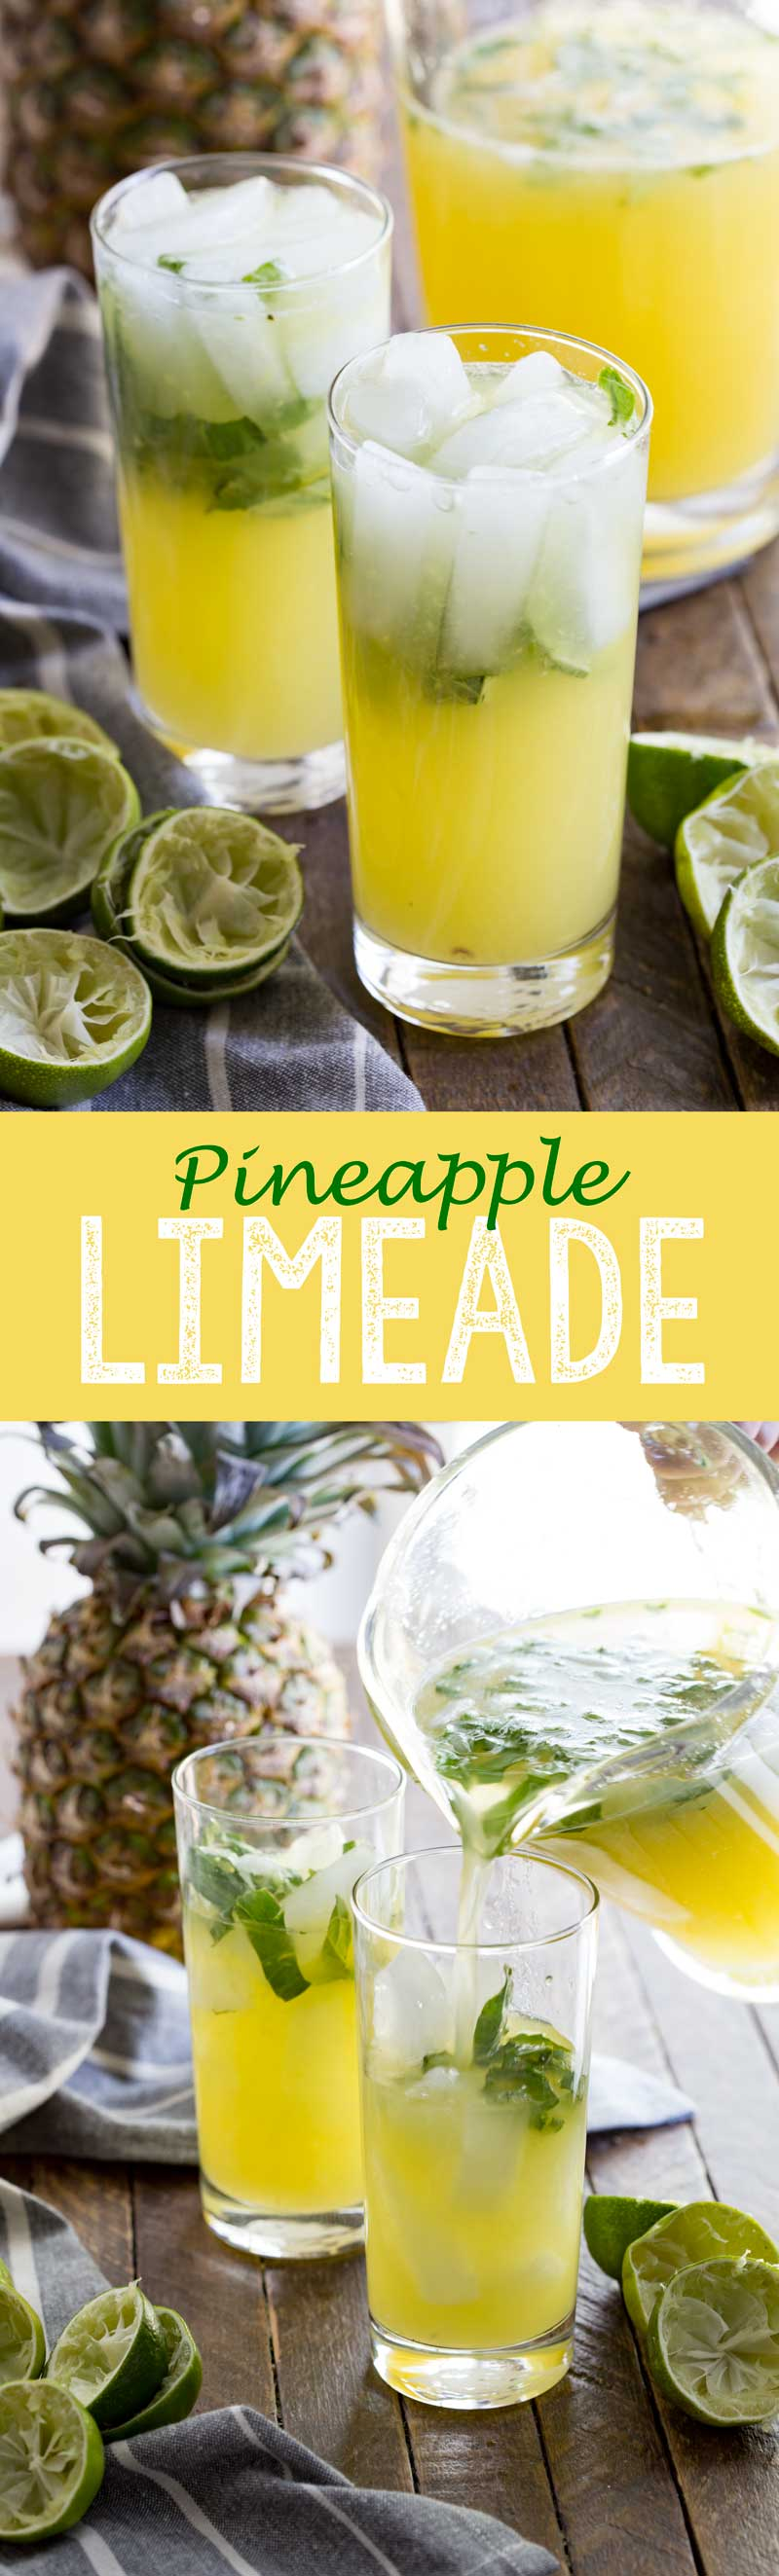 Cool refreshing pineapple limeade, the perfect combination of flavors for a summery drink